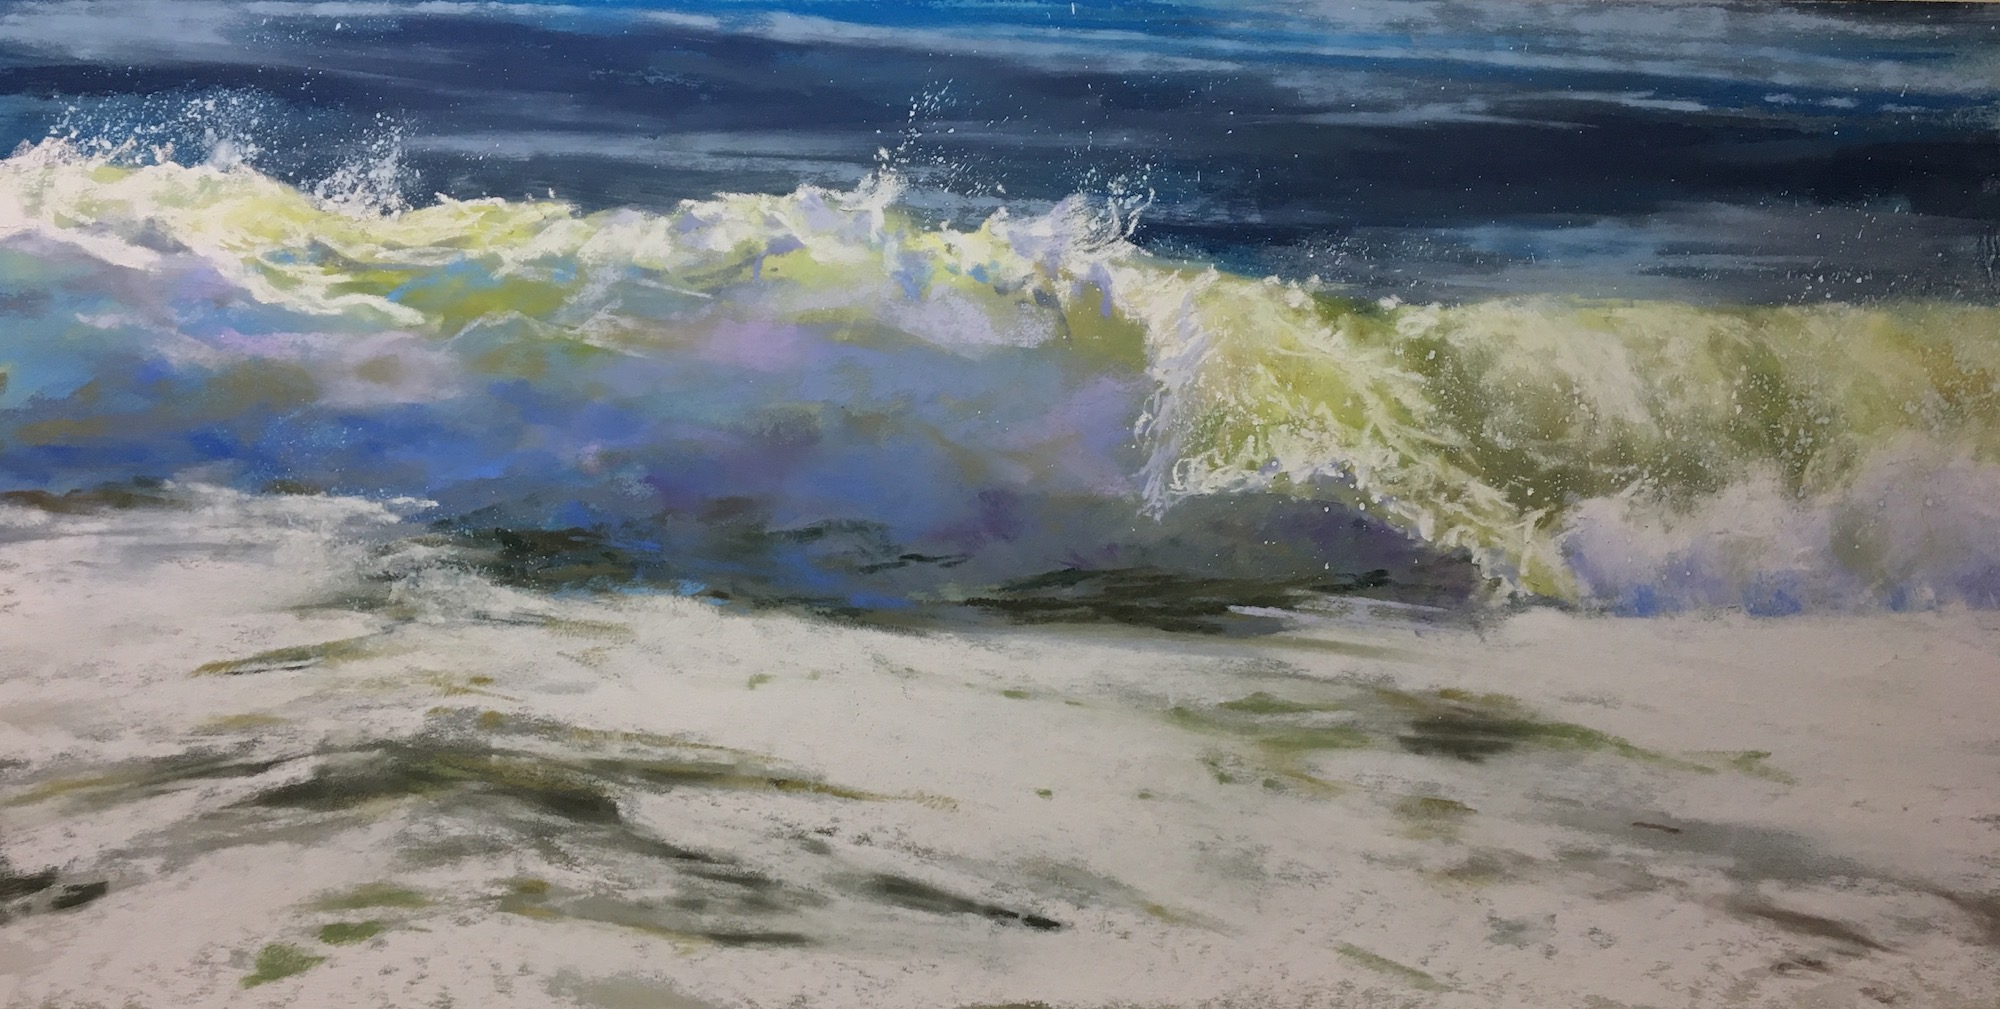 "Jeanne Rosier Smith, ""On The Edge,"" pastel, 16 x 20in. My interest here lay in the power and movement of the wave's forward curve. Contrasting soft-edged mist with crisp white foam created the drama and depth I was after."